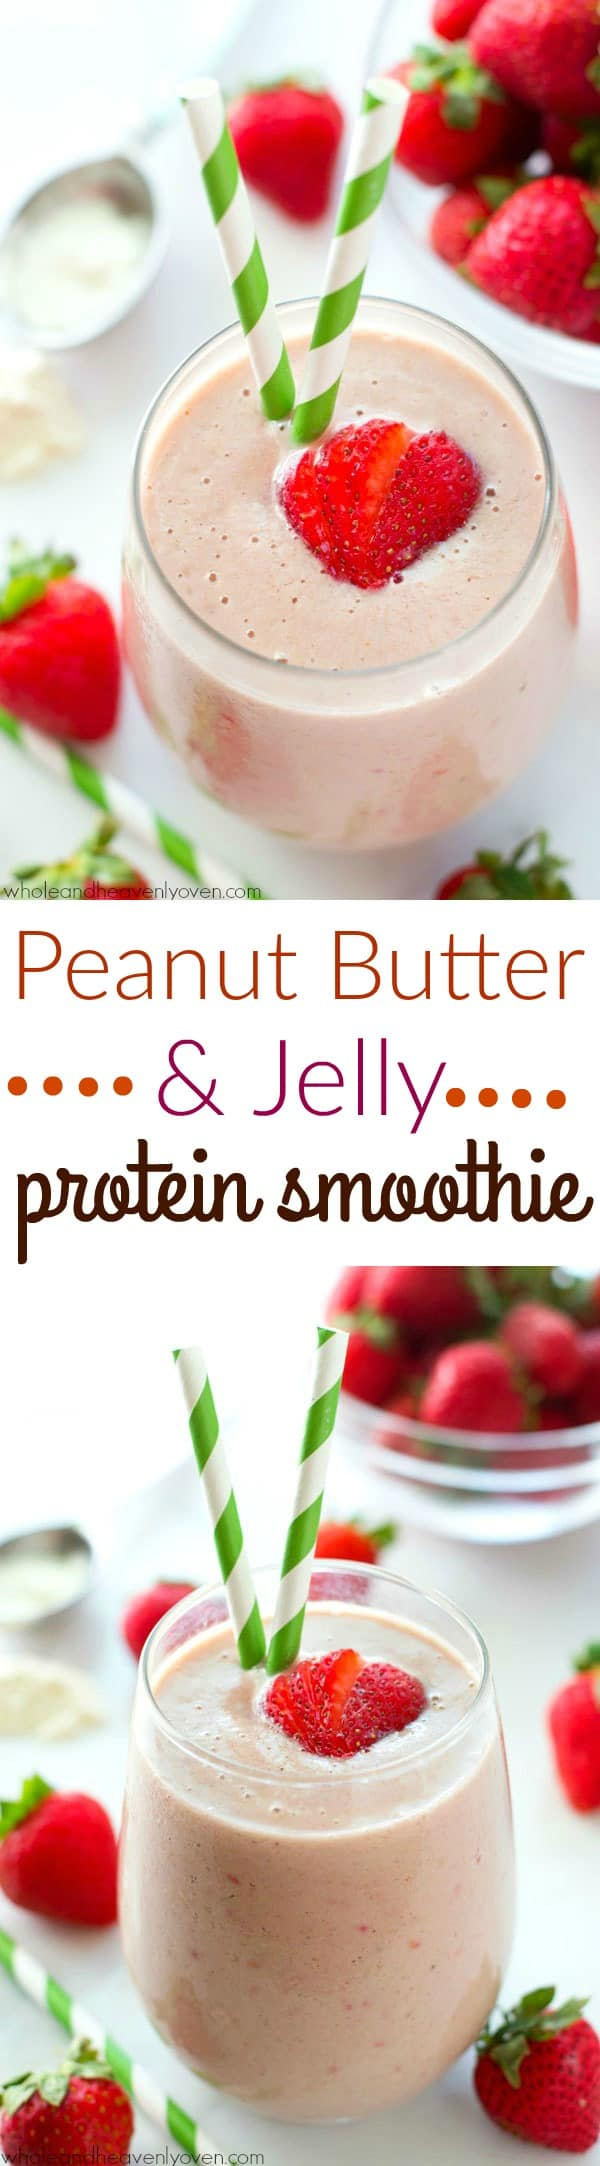 Packed with peanut butter and jelly flavors and loaded up with THREE sources of protein, this simple smoothie is a healthy breakfast must! @WholeHeavenly